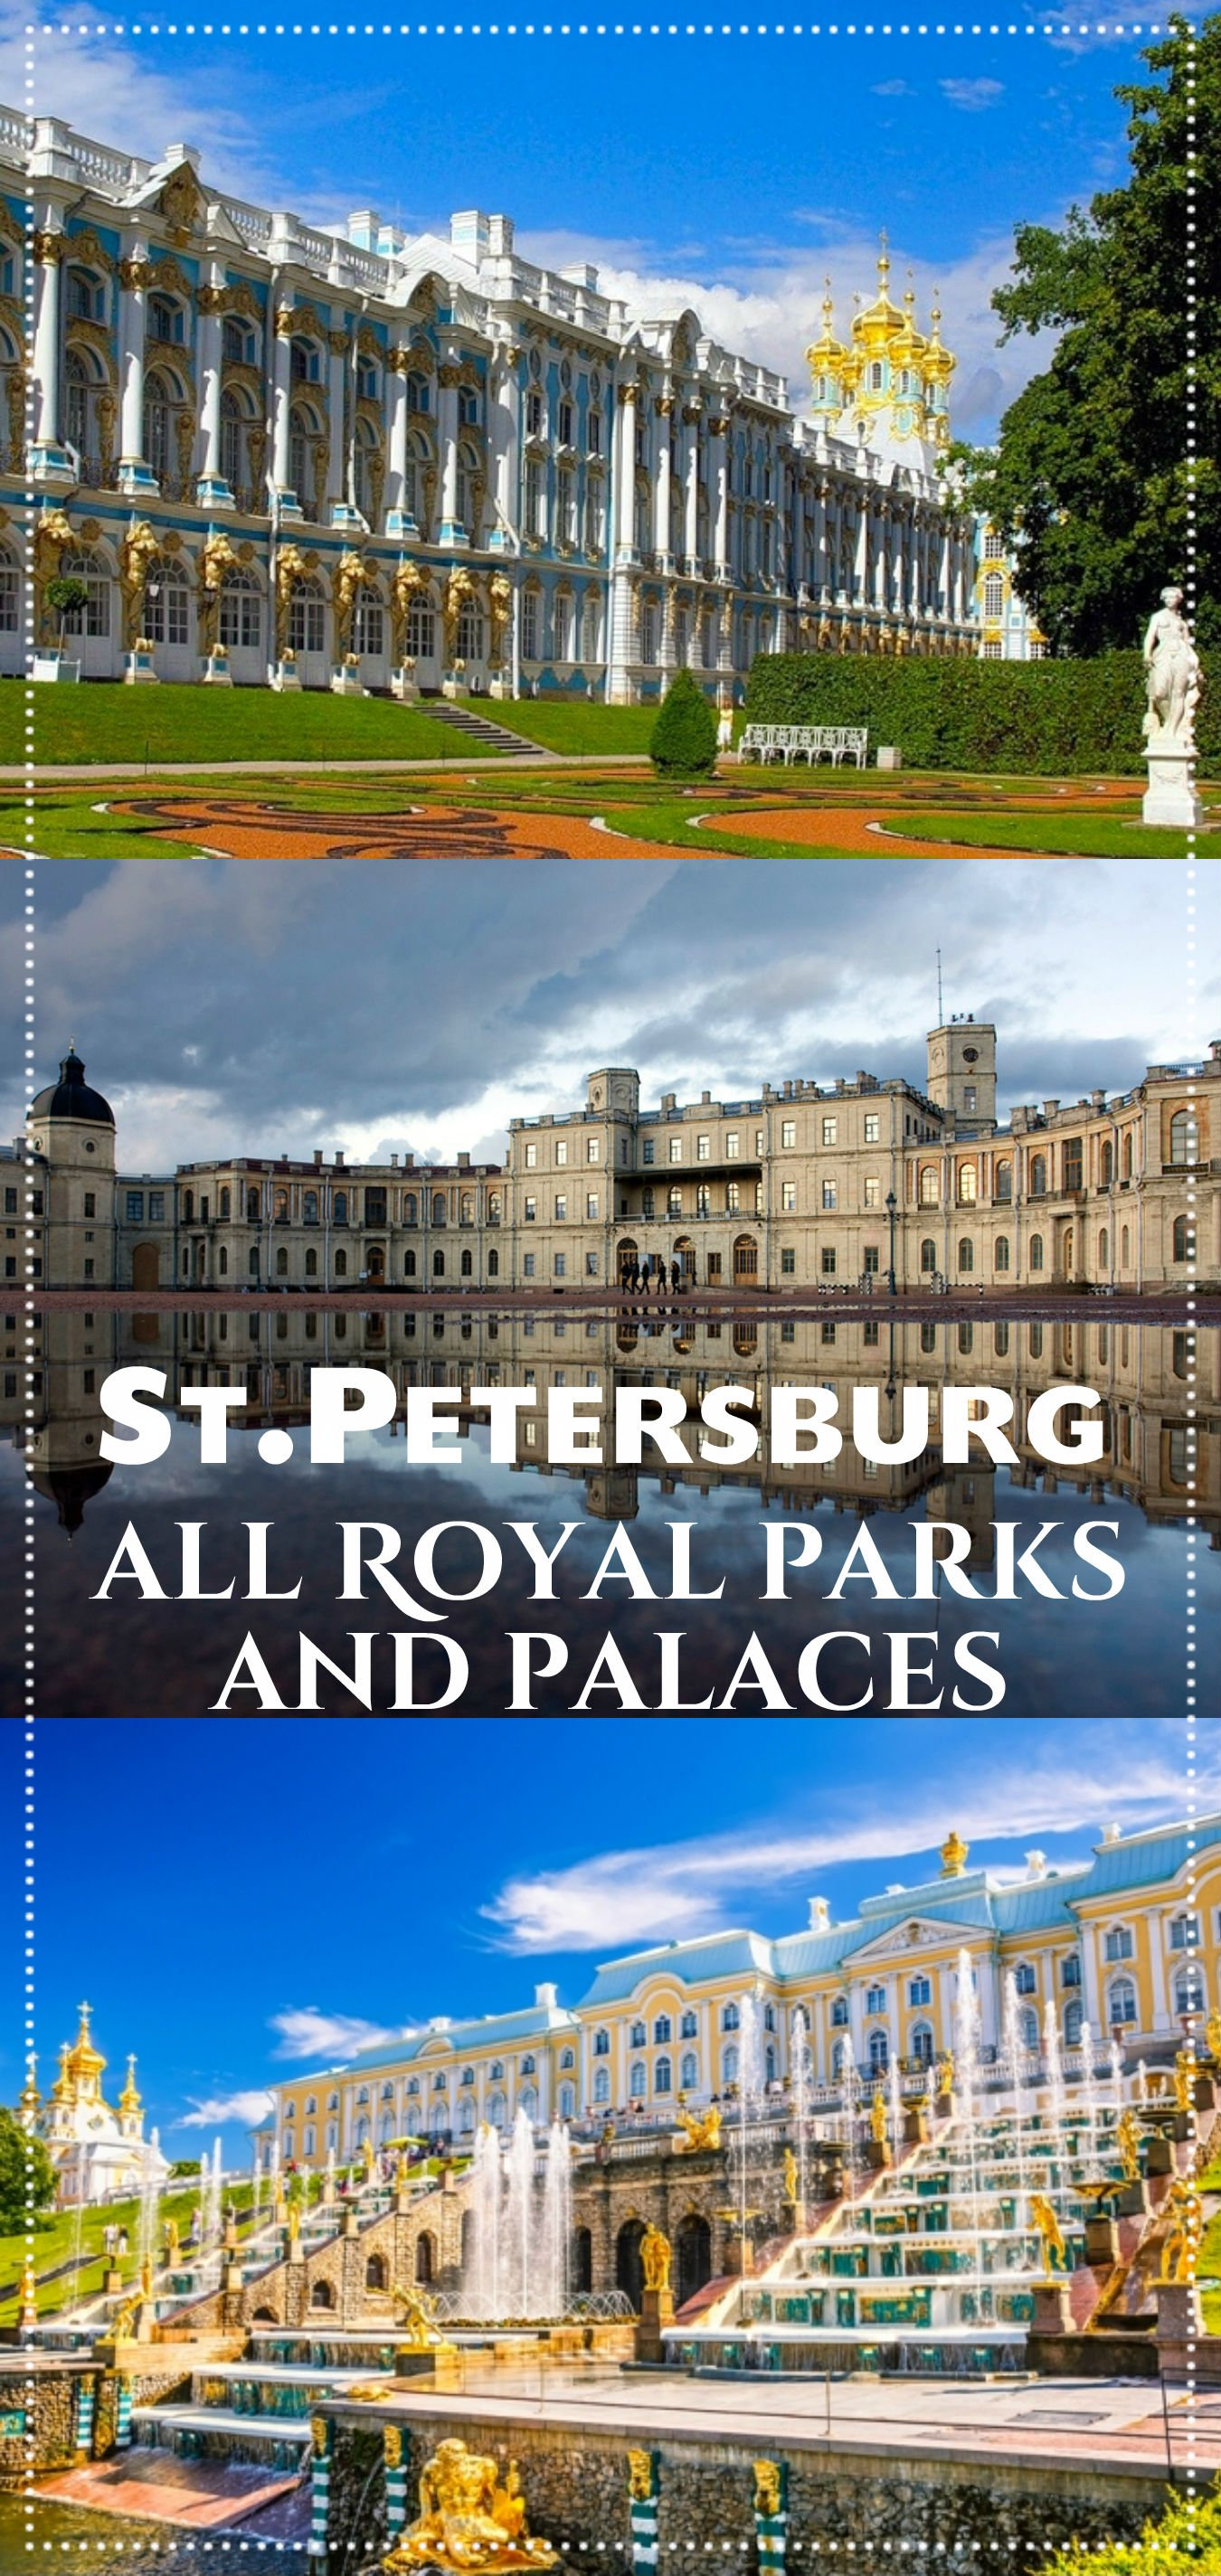 St Petersburg Nood: Best Day Trips From St.Petersburg, Russia